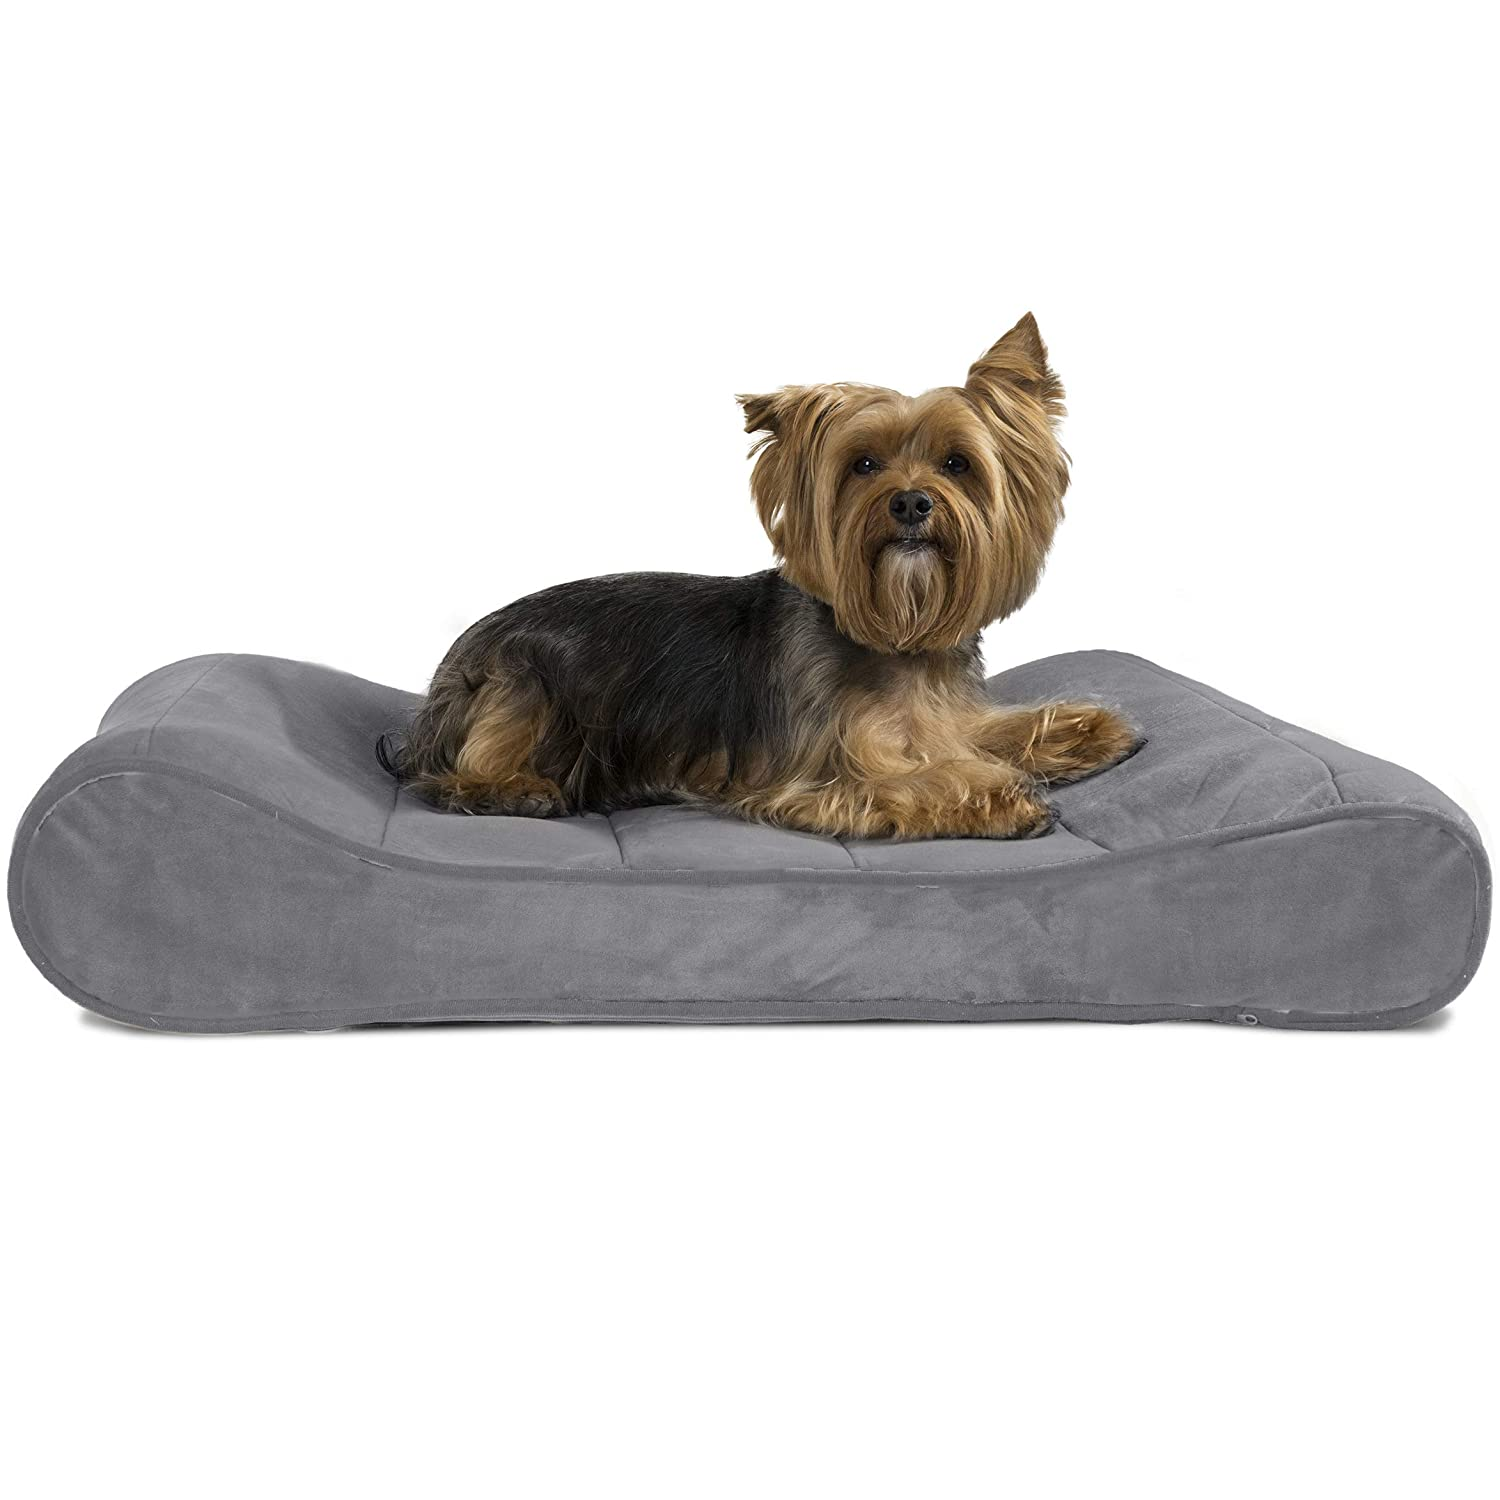 Furhaven Pet Dog Bed Orthopedic Micro Velvet Ergonomic Luxe Lounger Cradle Mattress Contour Pet Bed w Removable Cover for Dogs Cats – Available in Multiple Colors Styles